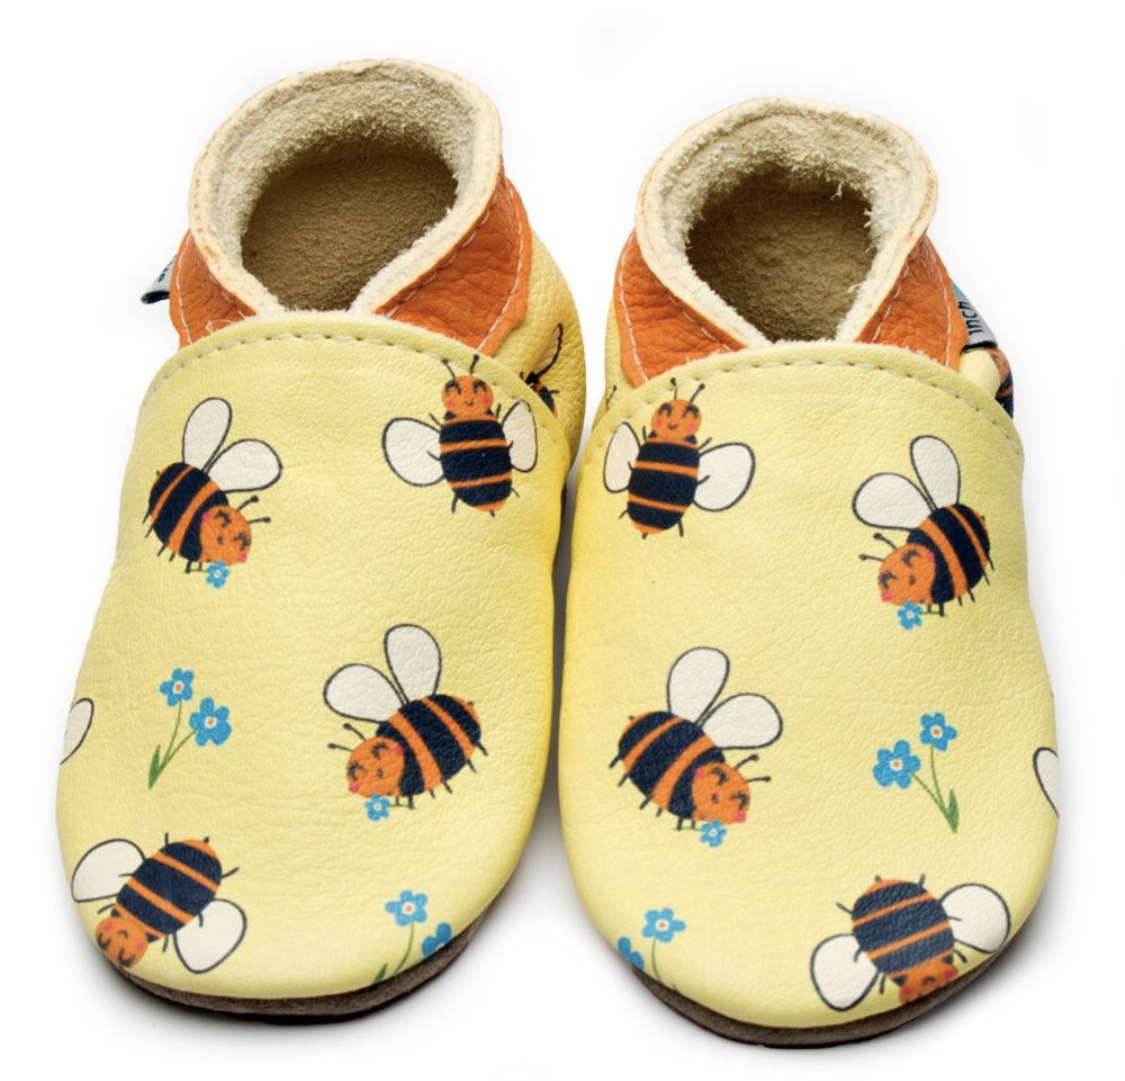 Bee Happy Leather shoes by Inch Blue, Cotswold Baby co